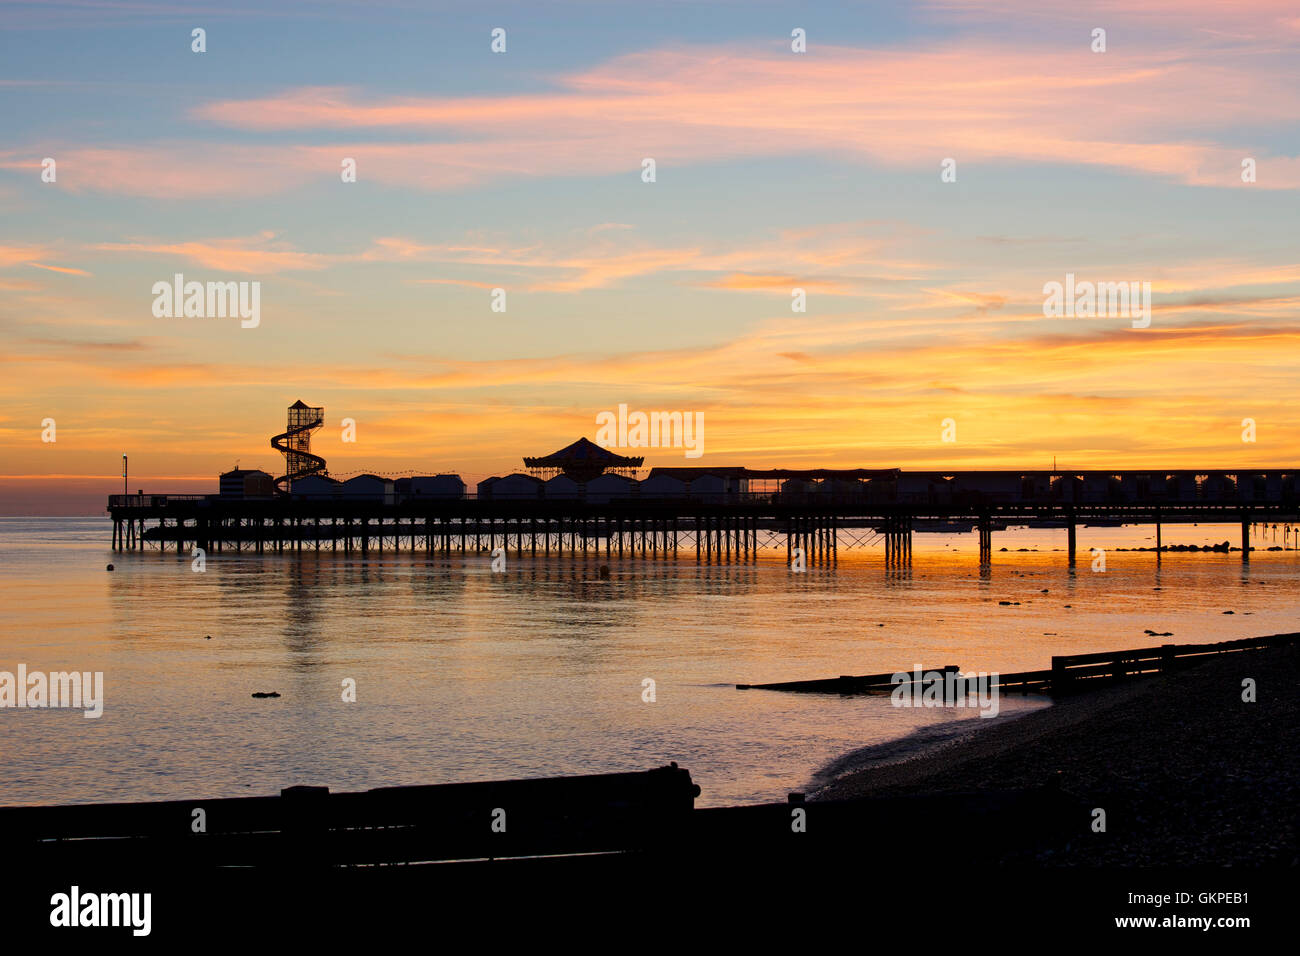 Herne Bay, Kent, UK. 23rd August 2016: UK Weather. Sunrise at Herne Bay pier as temperatures are expected to be - Stock Image